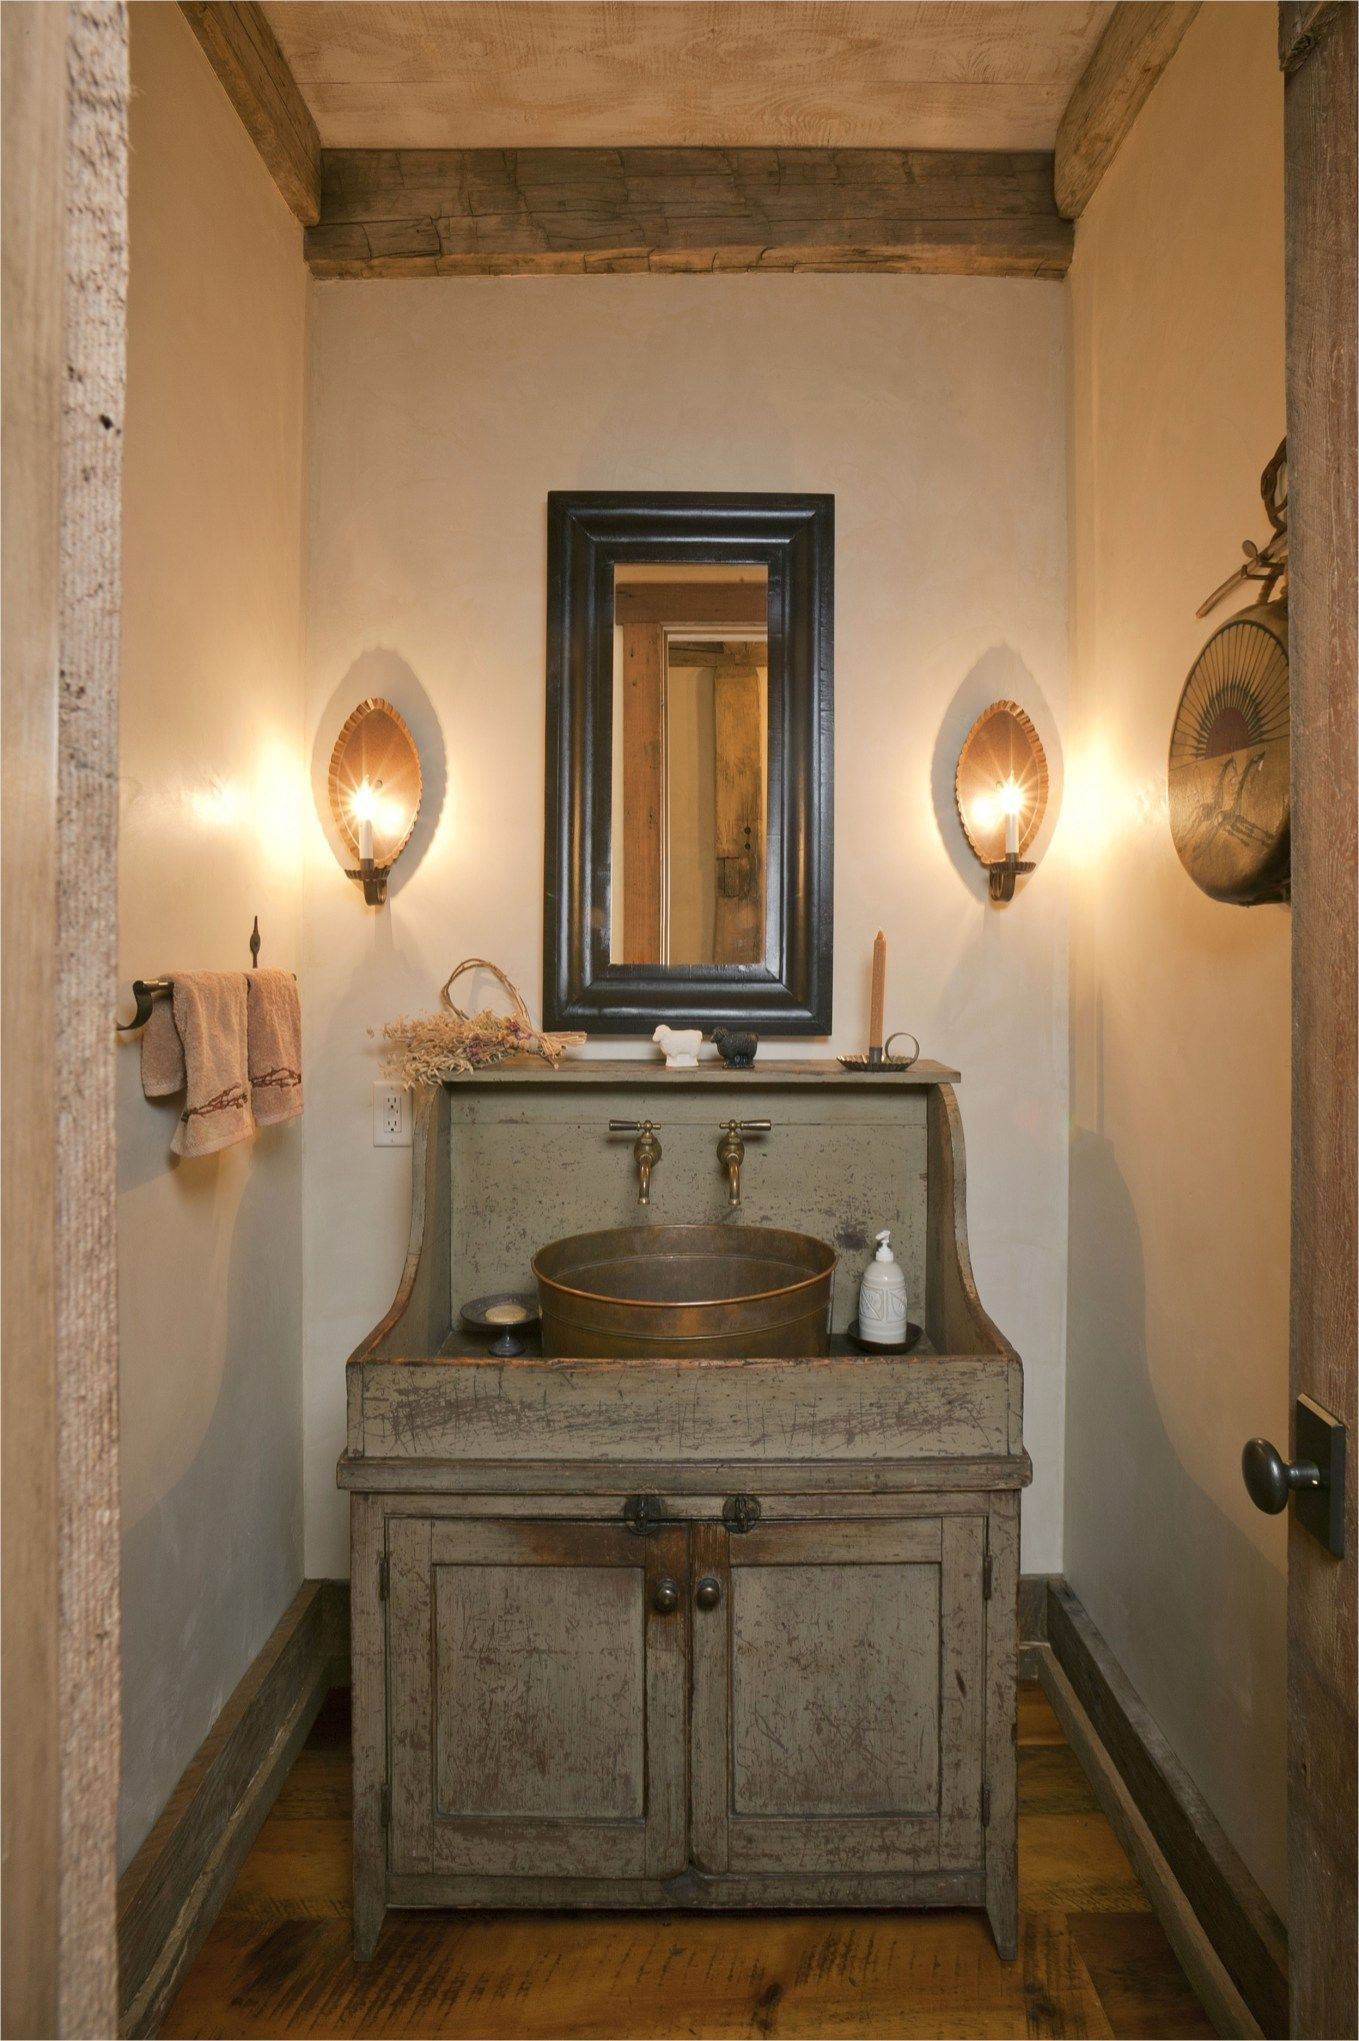 country rustic bathroom ideas 45 stunning country rustic bathrooms 33 28 bathroom ideas small